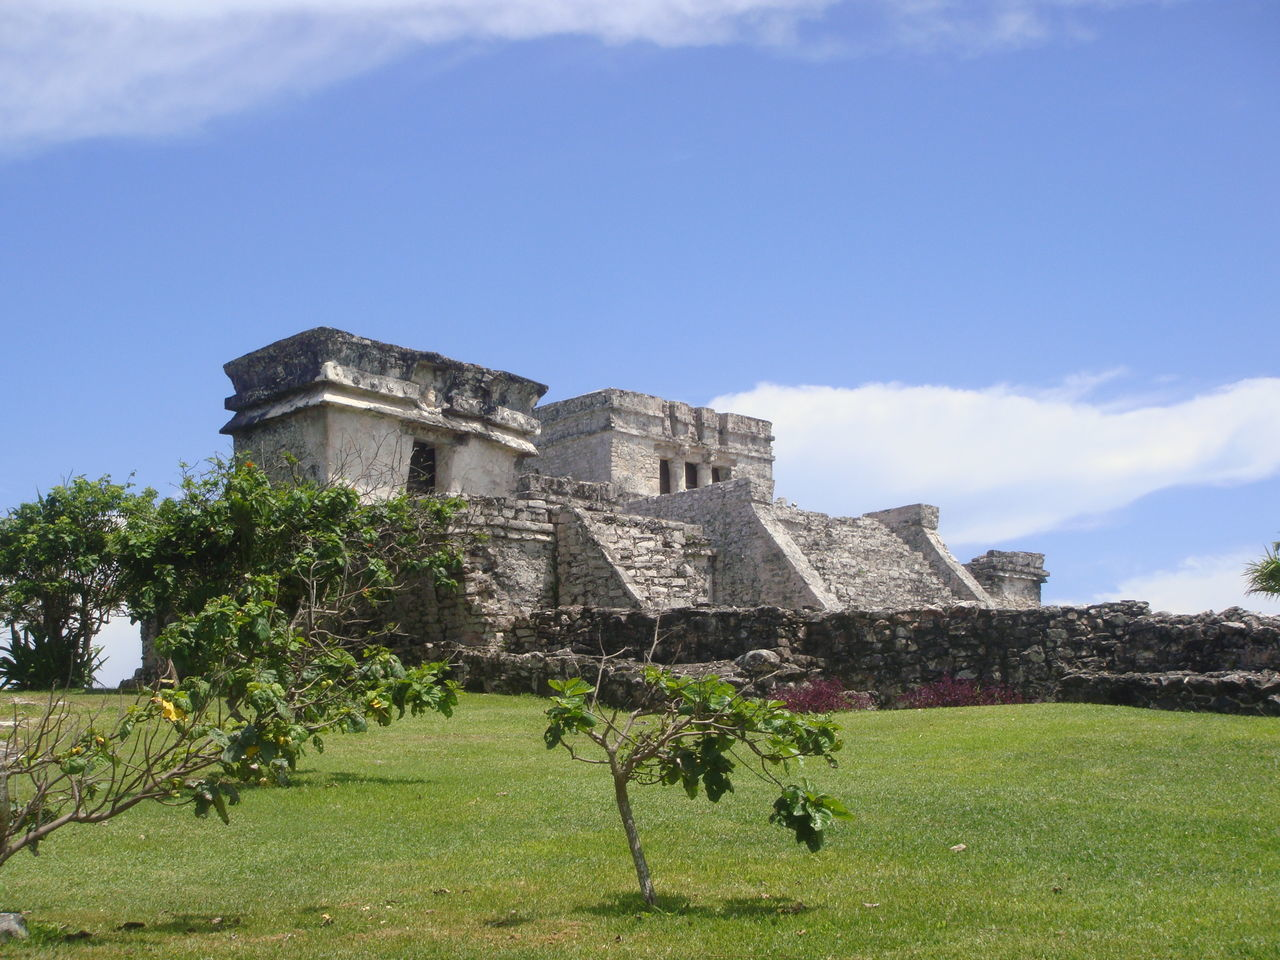 Building Exterior City Sky Architecture Built Structure Cloud - Sky History No People Travel Destinations Outdoors Nature Tree Day Tulum , Rivera Maya. Tulum Beach Tulum Ruins Tulum, Mexico Mexico Architecture